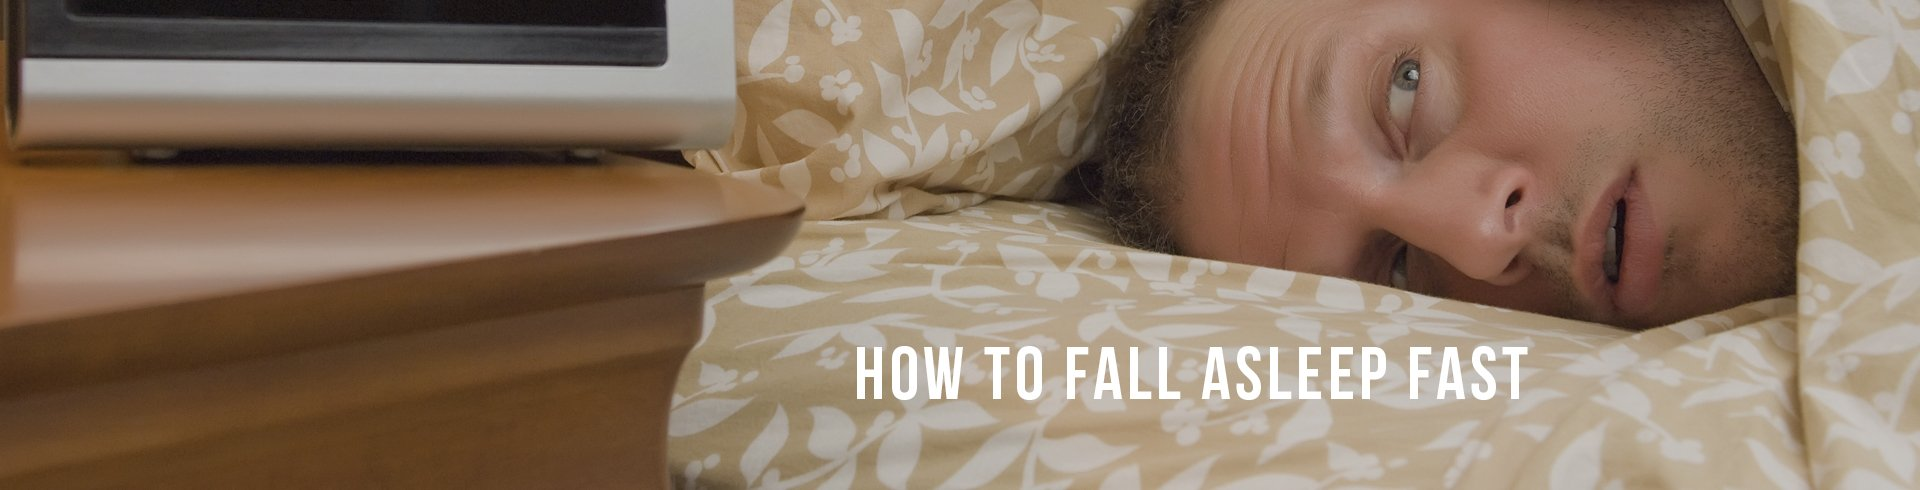 How To Fall Asleep Fast Rc Willey Furniture Store How To Fall Asleep Very  Easily Solution